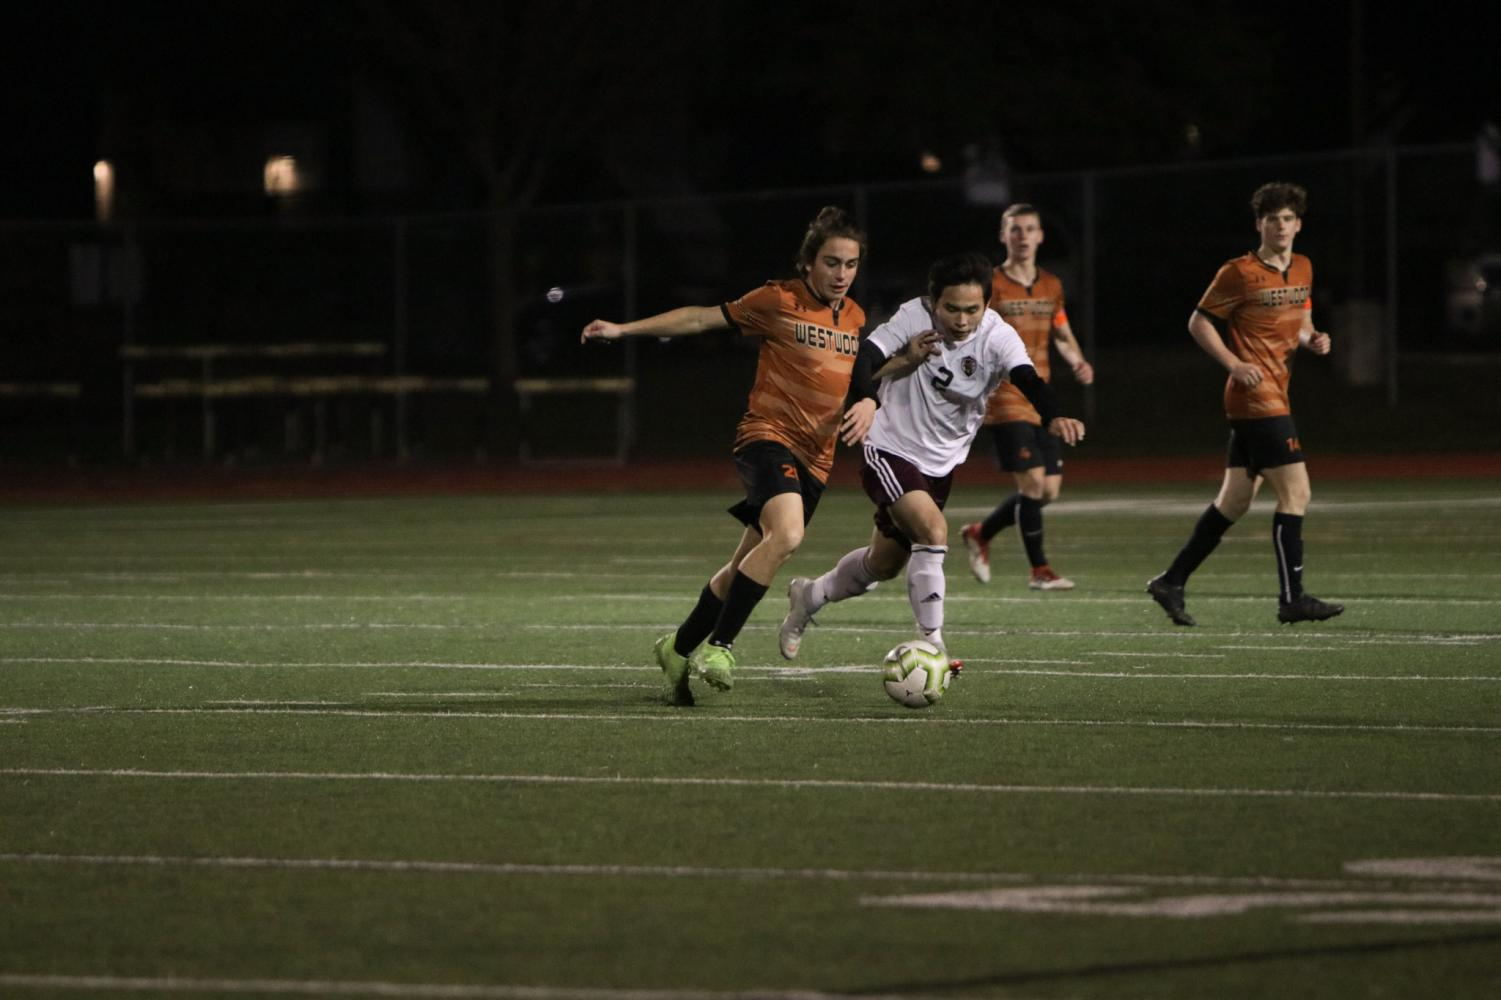 Nikola+Djordjevic+%2721+dribbles+the+ball+downfield%2C+with+an+opponent+close+behind.+This+is+Djordjevic%27s+third+year+playing+for+the+varsity+team.